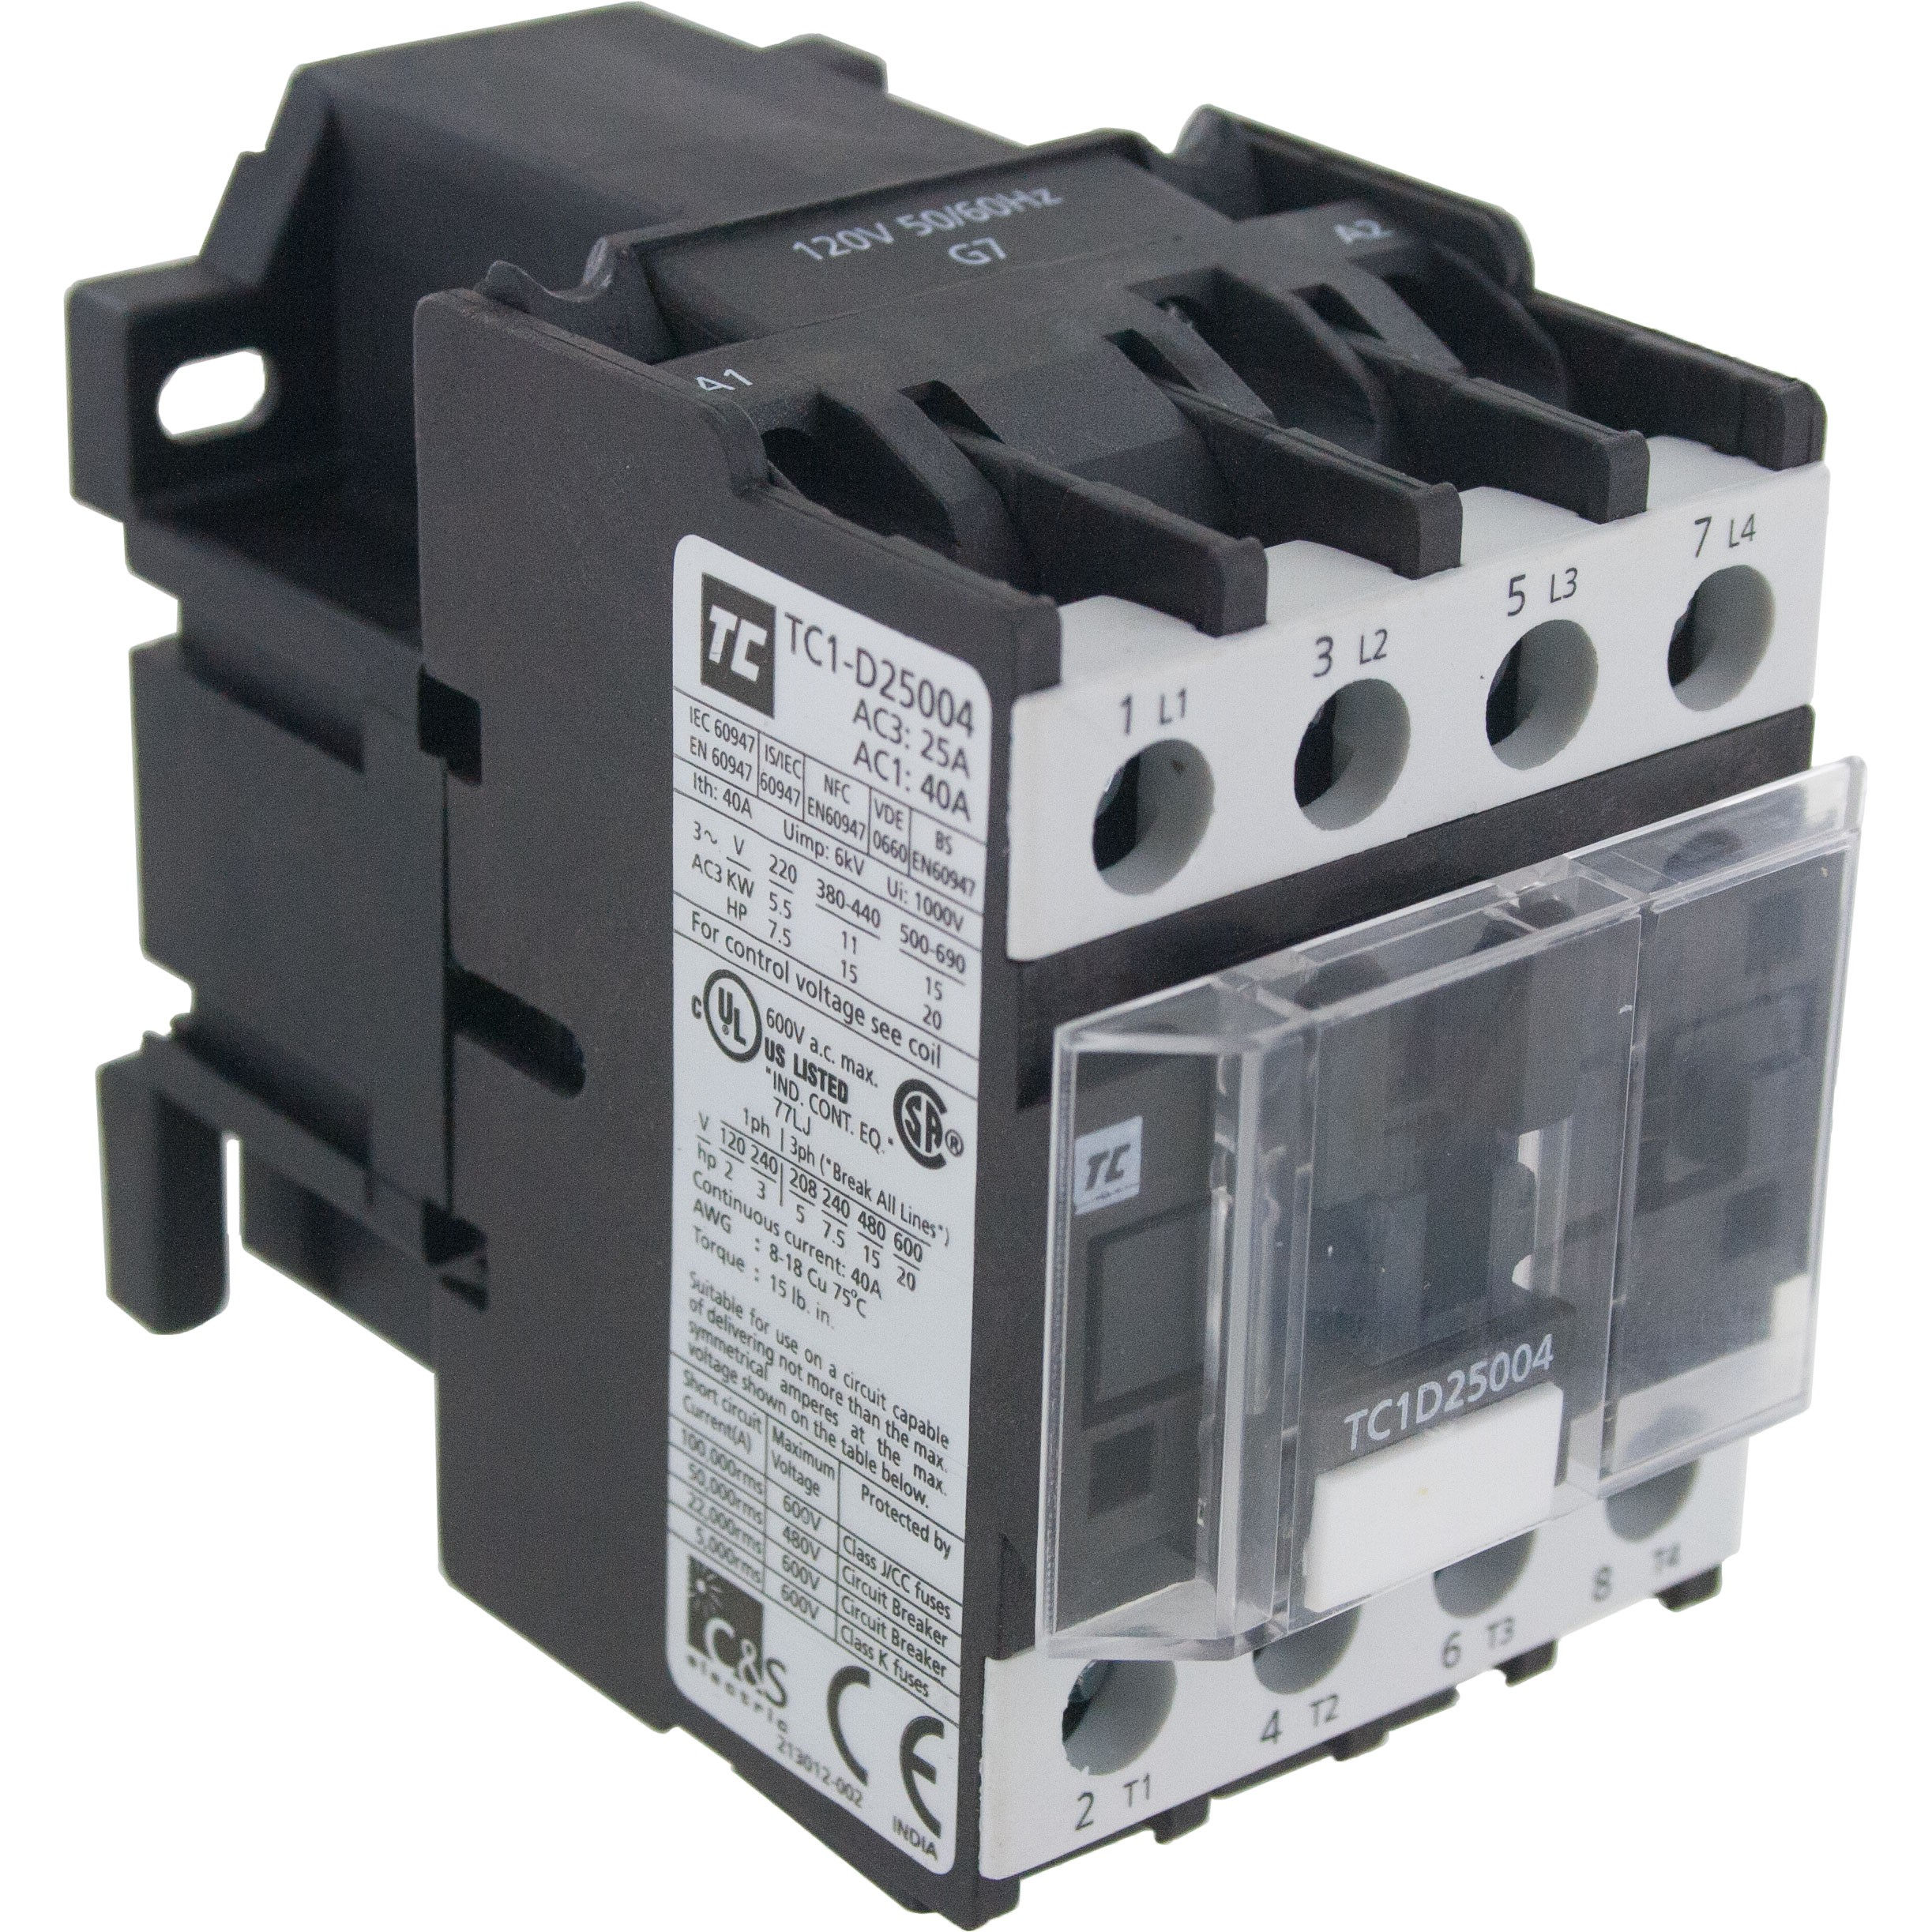 4 Pole Contactor 25 Amp 4 N/O 120 Volt AC Coil | ElecDirect